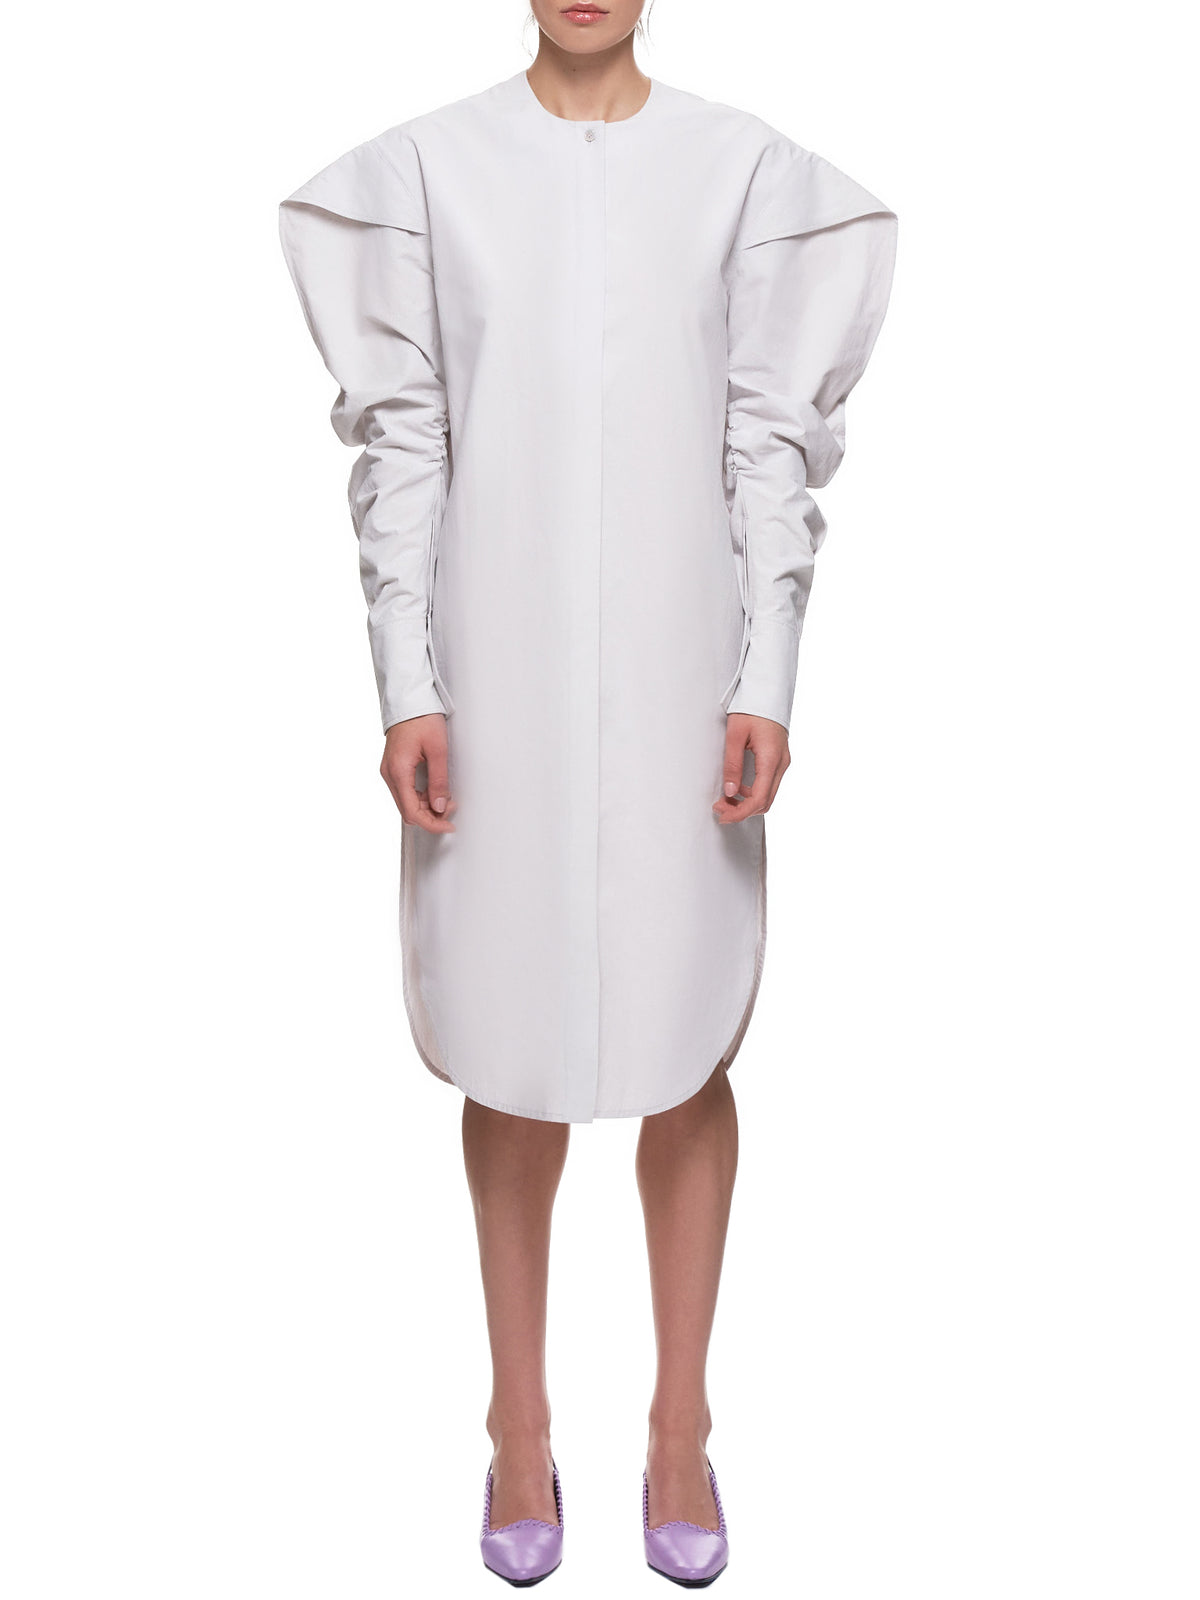 'Barocco Long-Sleeve Dress' (36-BAROCCO-GREY)